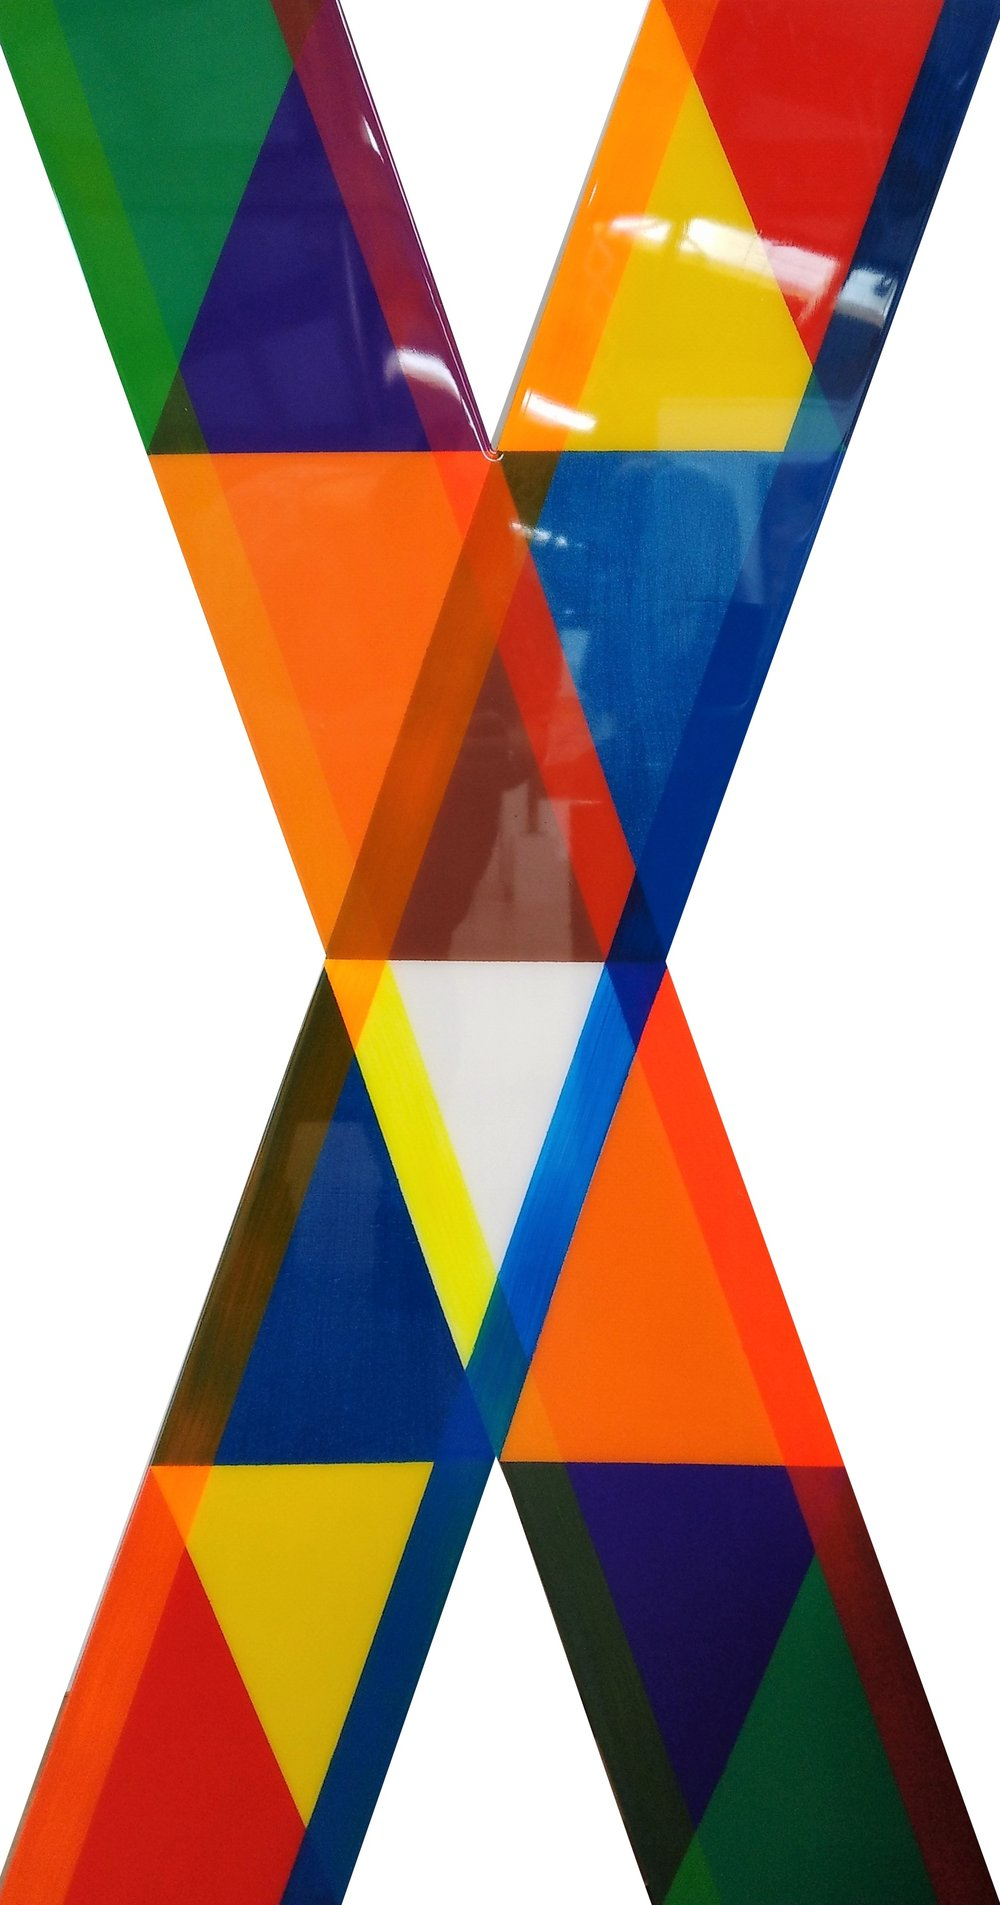 Time For Change  Wendy Hannah, ply acrylic & resin wall sculpture, 1200mm x 605mm x 80mm  $2,500.00